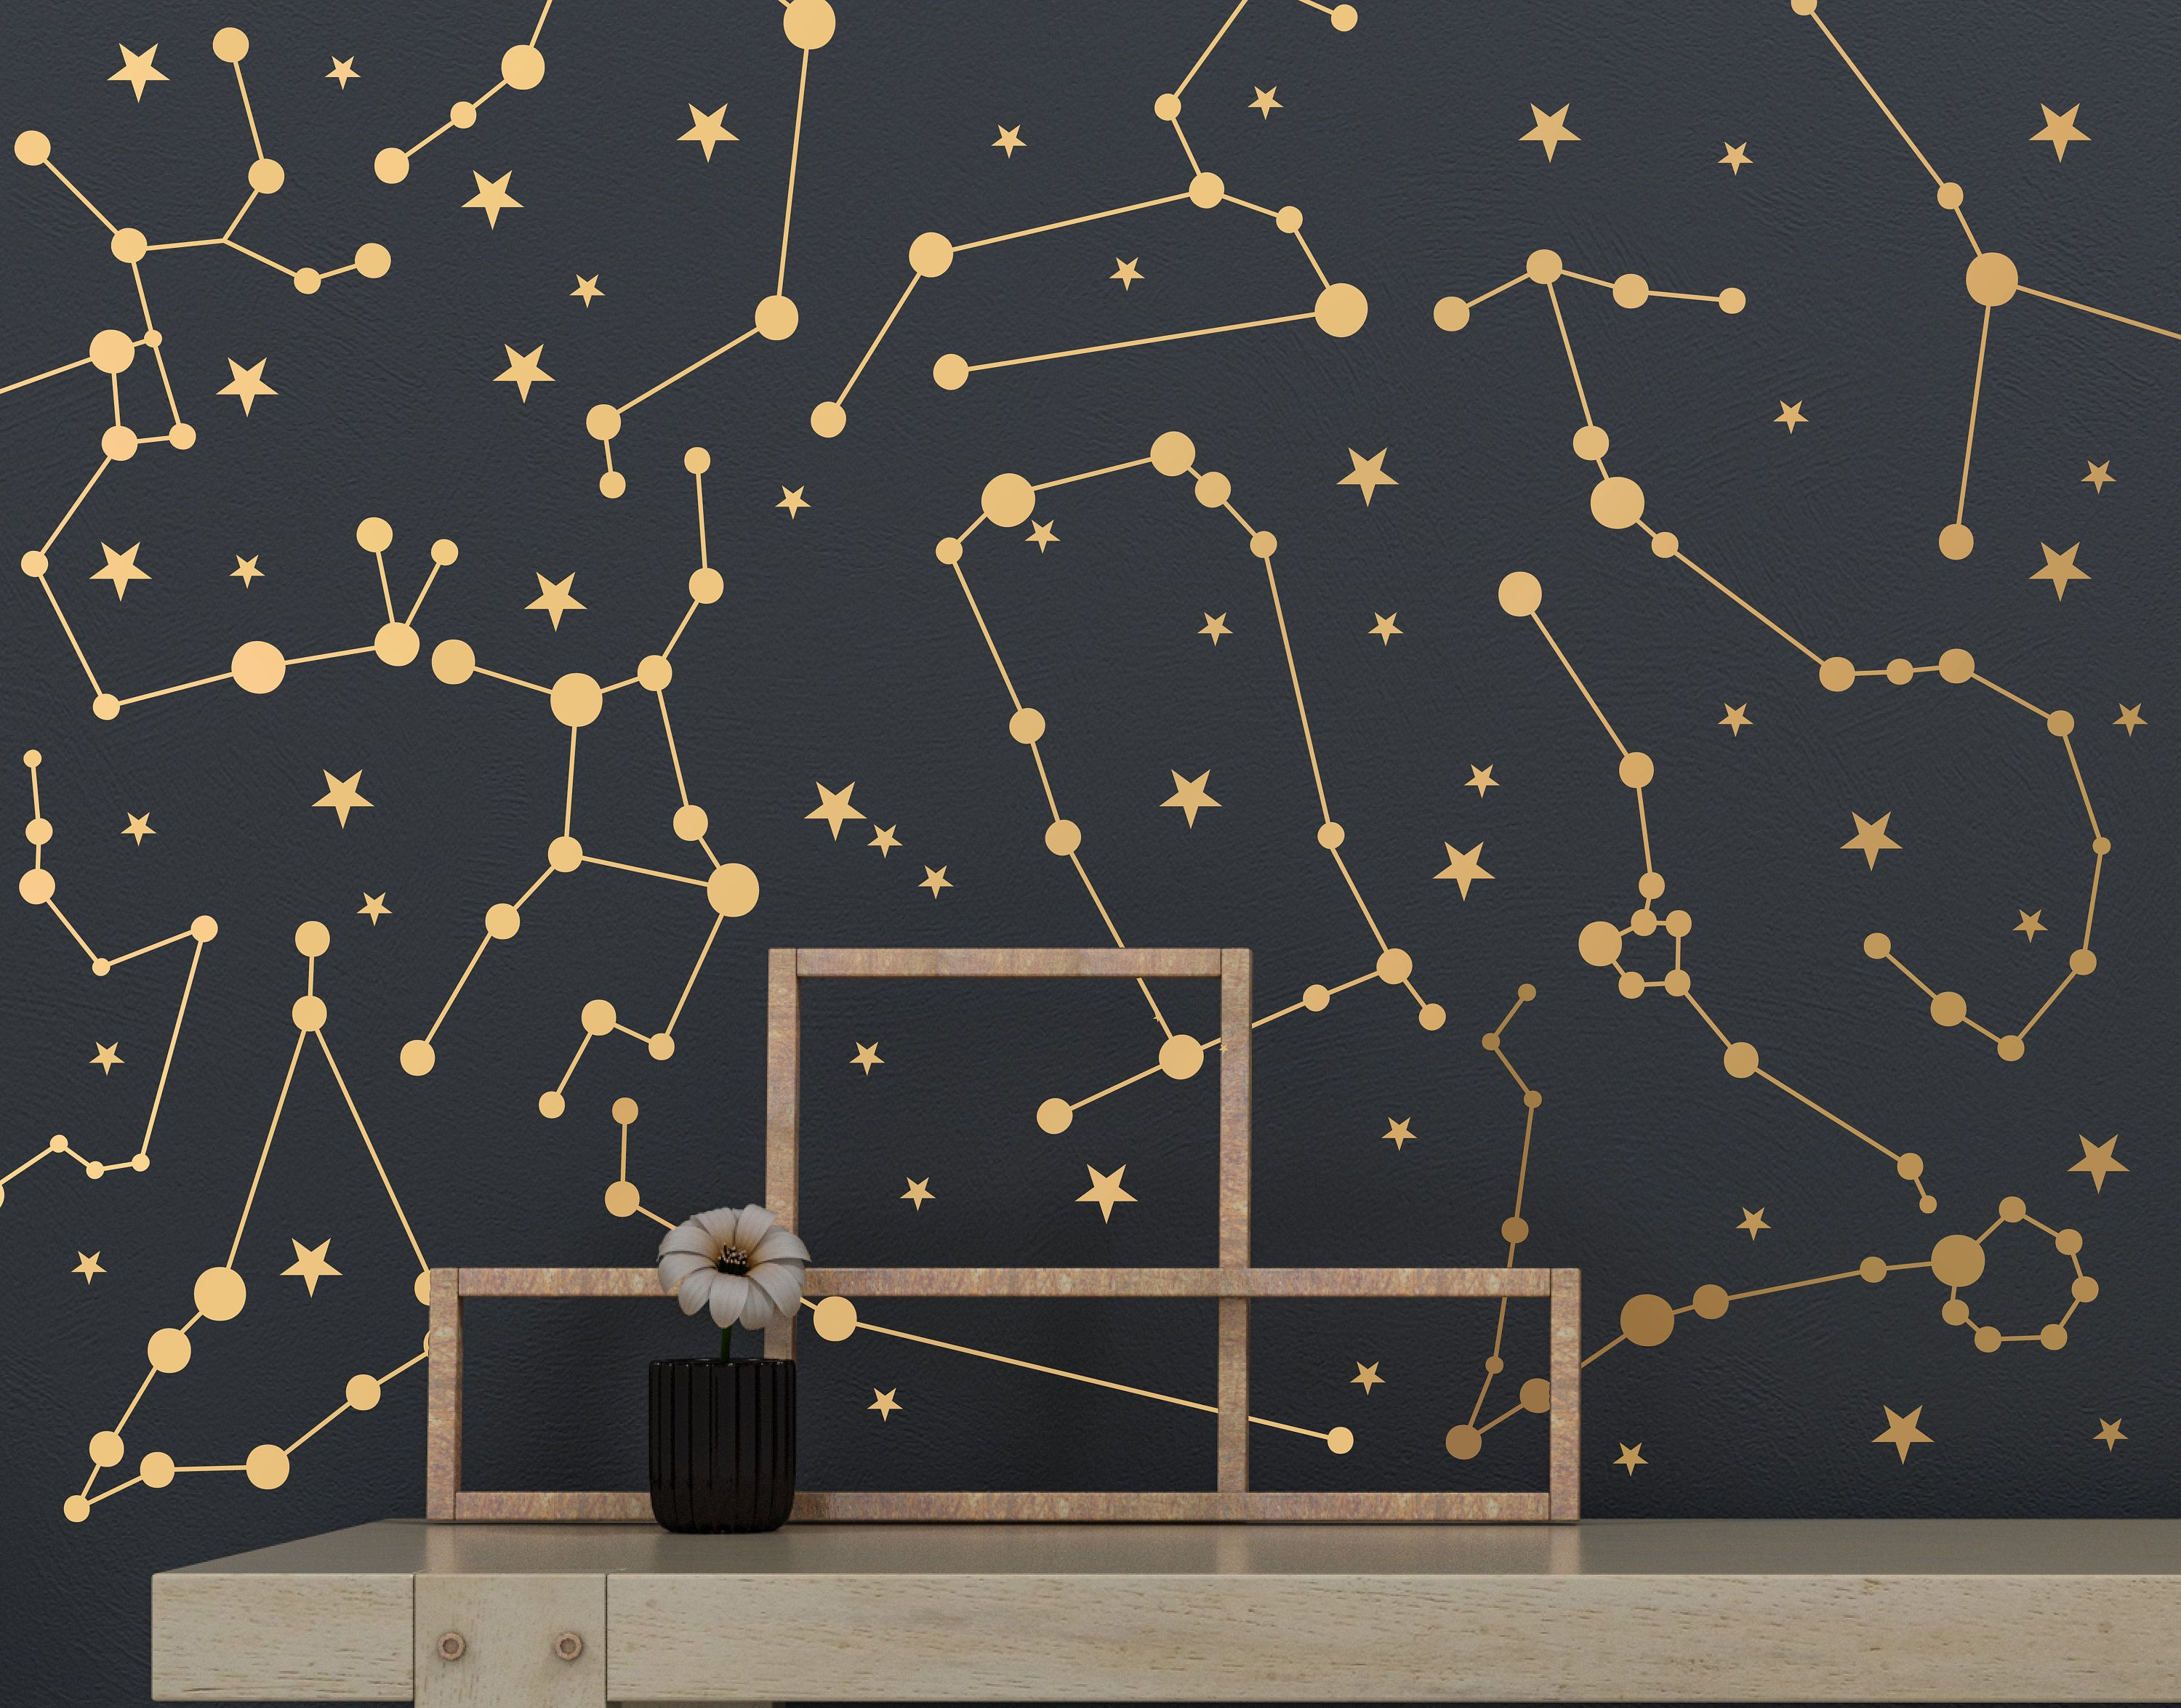 Zodiac Constellations And Star Decals Wall Decals Dorm Room